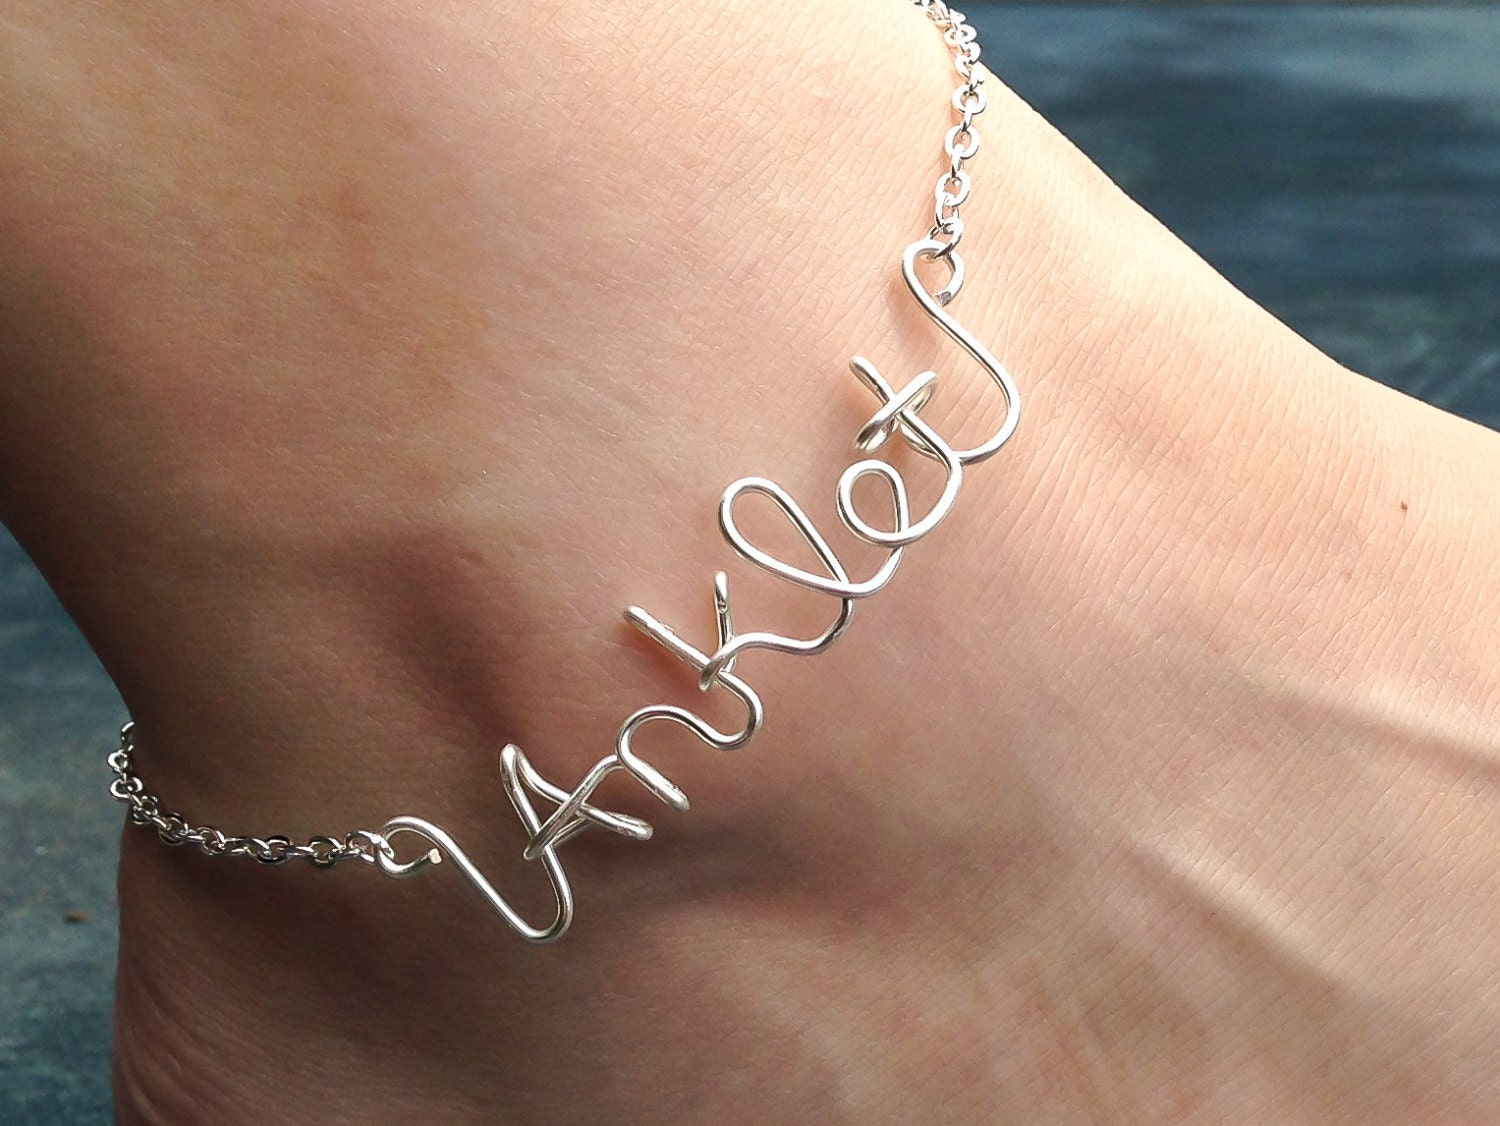 silver personalised sterling amazon name dp bracelet anklet co jewellery uk any with